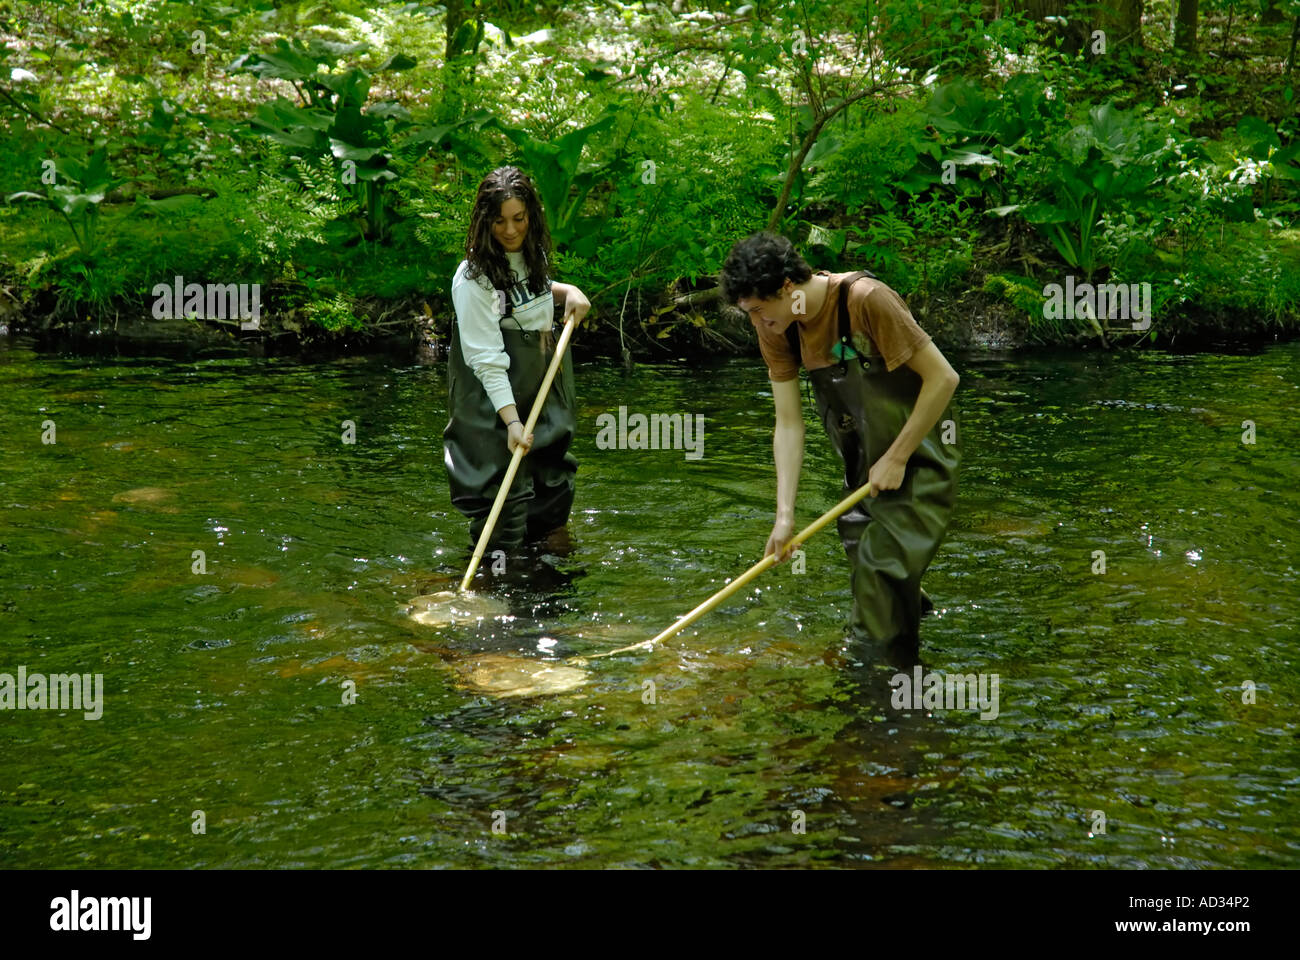 Teenagers high school students using net sampling river water for